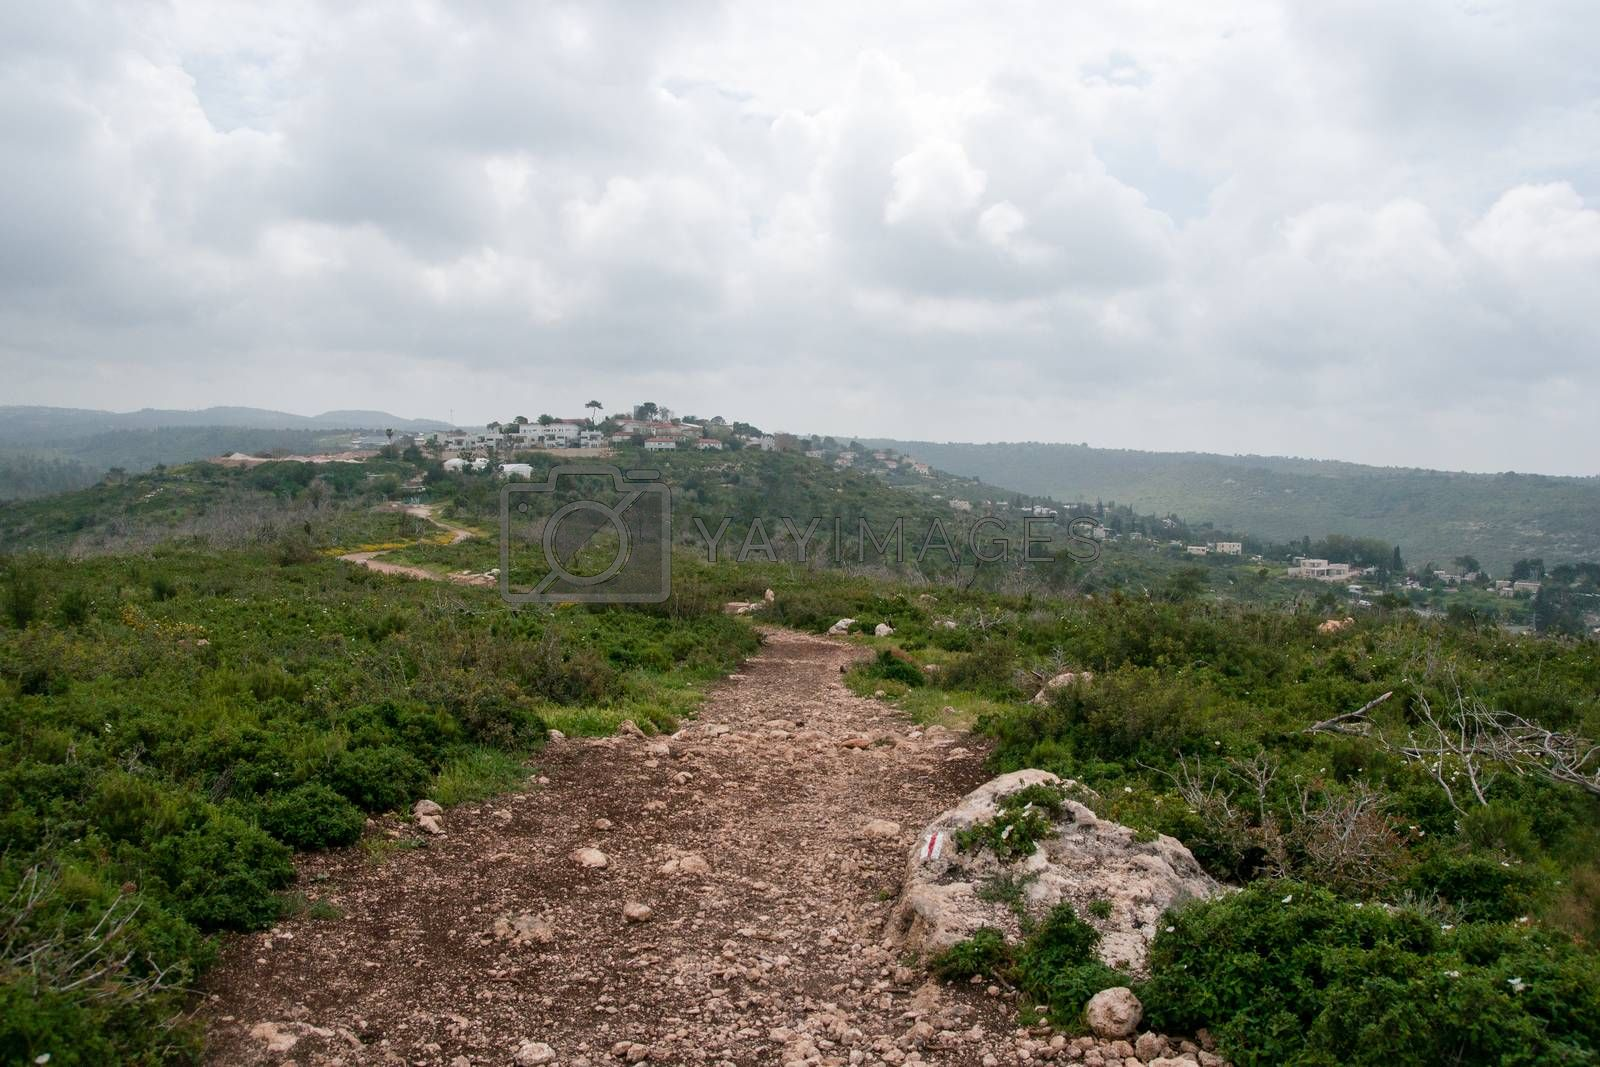 Hiking in Israeli nature landscape with good weather under cloudy sky